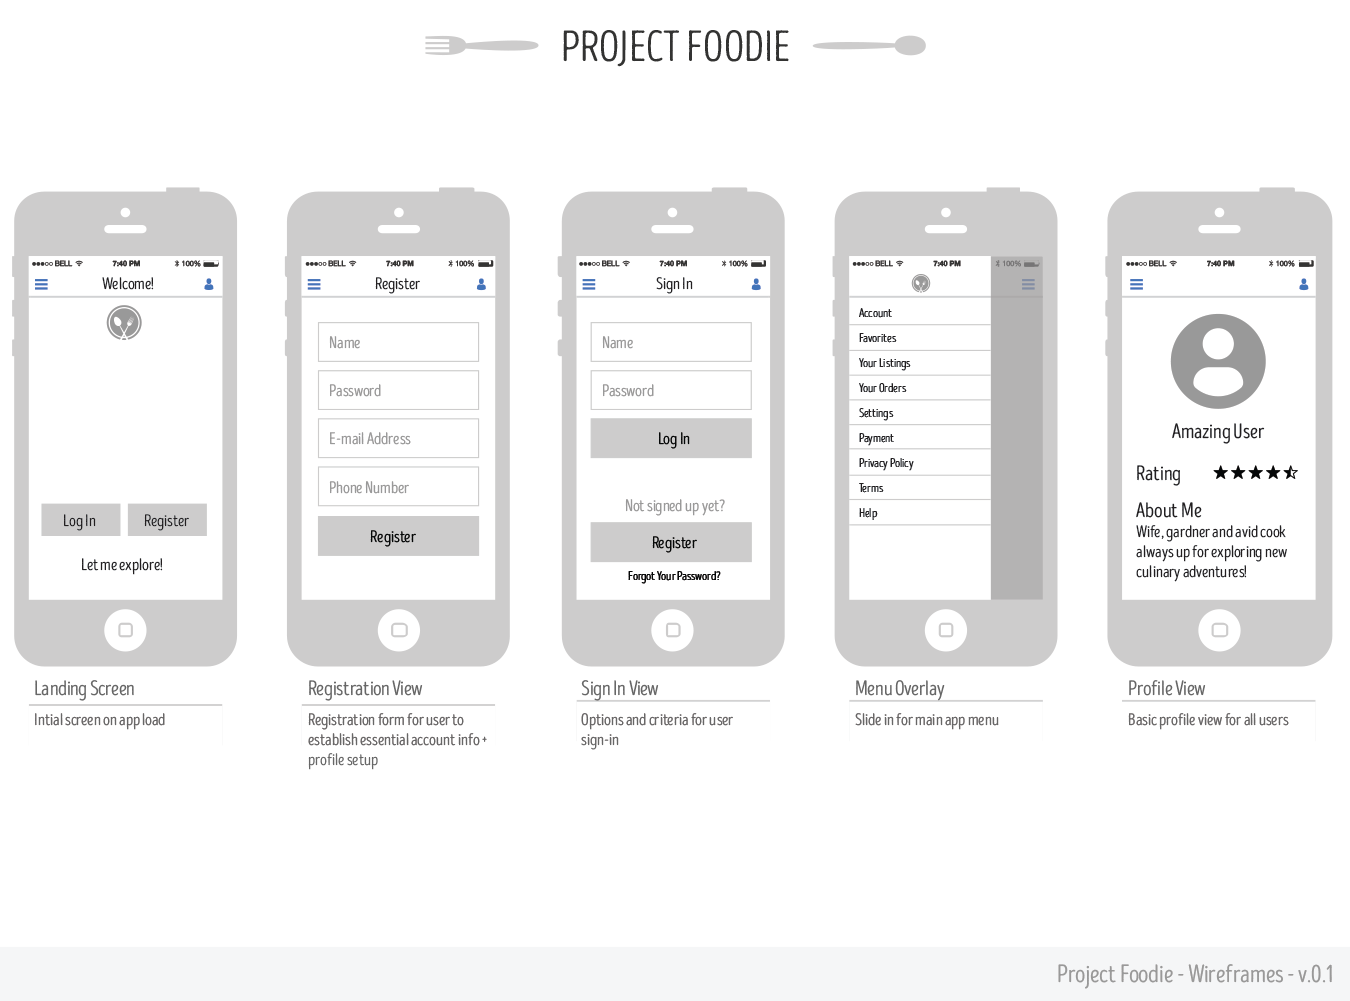 Wireframe for Project Foodie mobile product